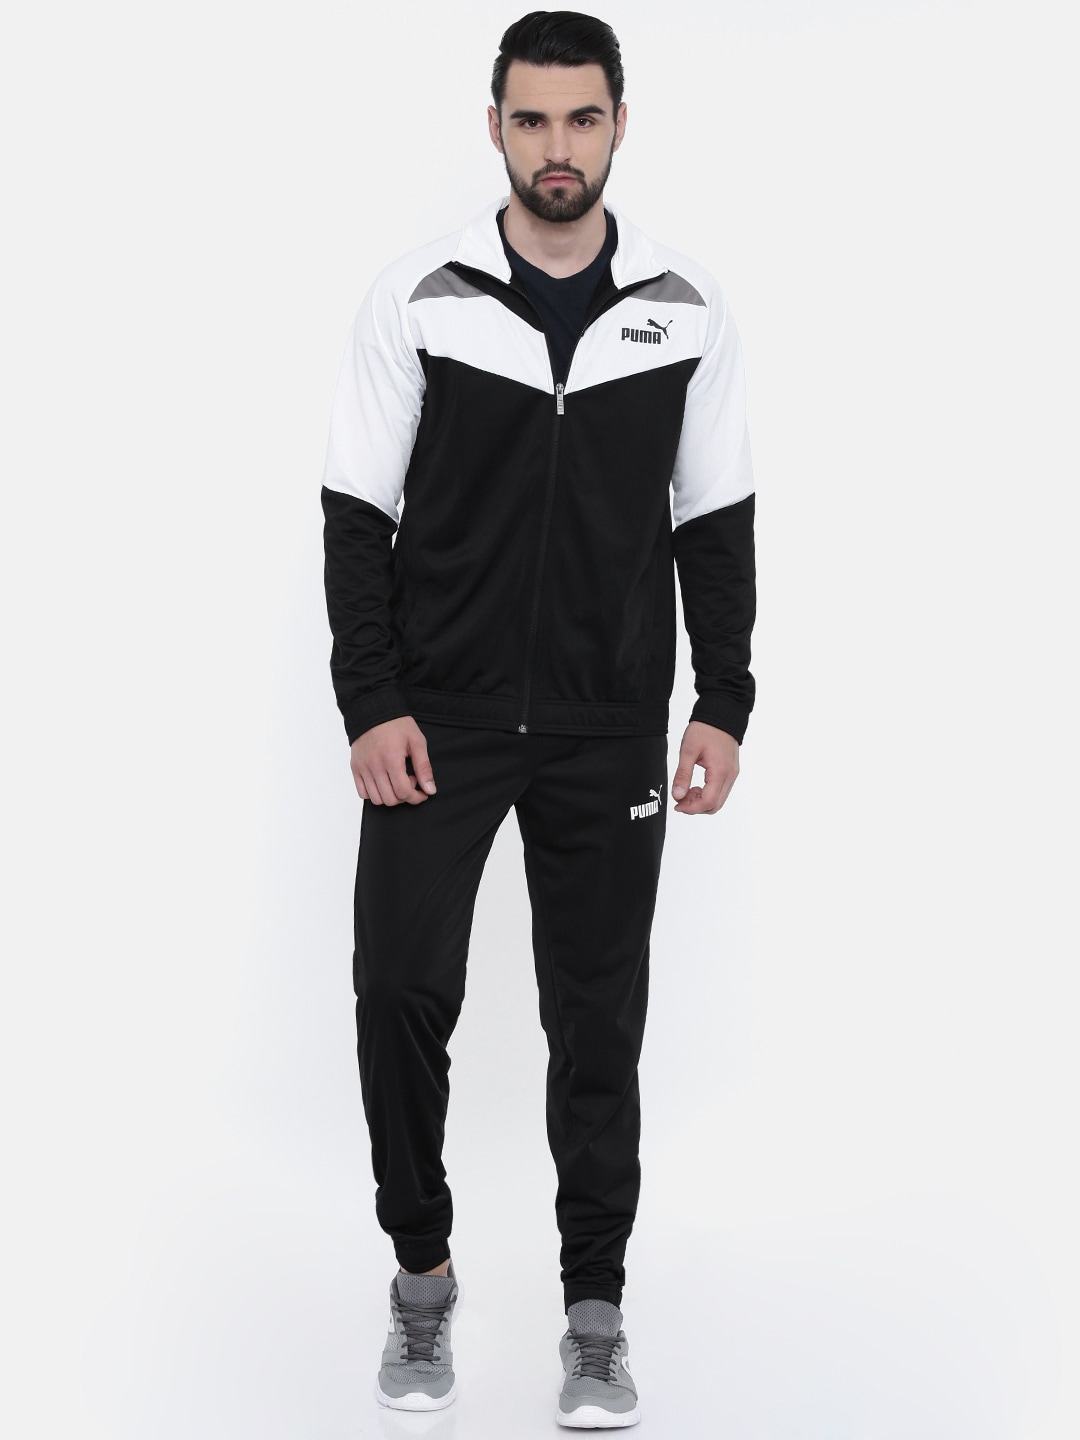 362310582a Puma Men Black & White Colourblocked Iconic Tricot Cl Tracksuit